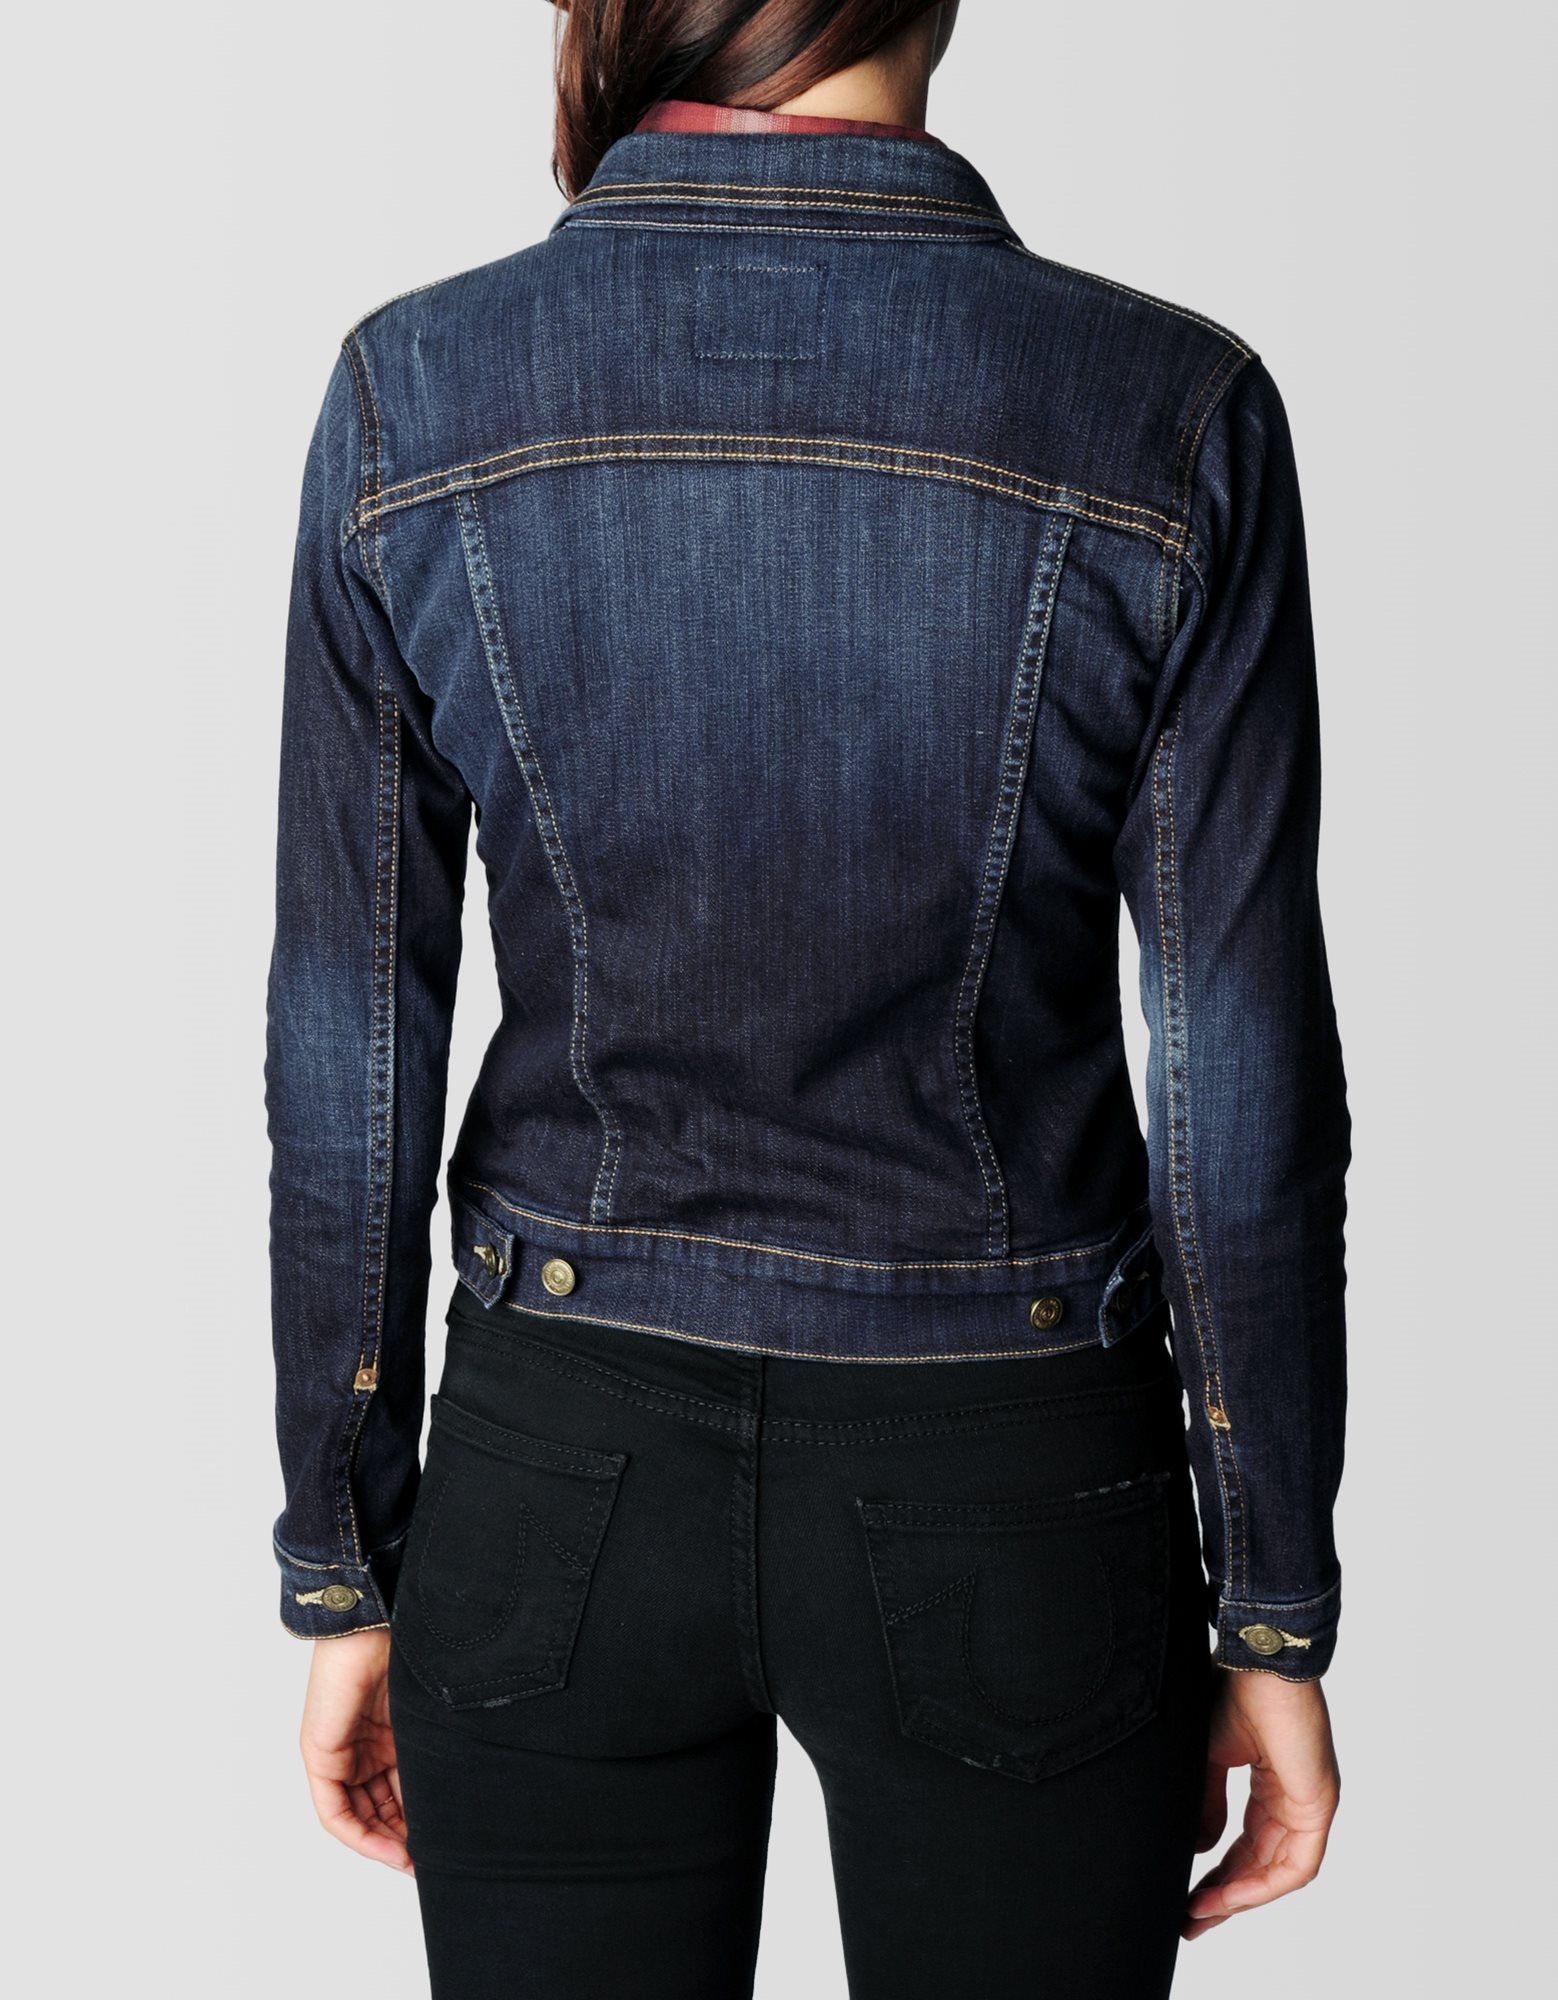 Fitted Denim Jacket Womens - Coat Nj